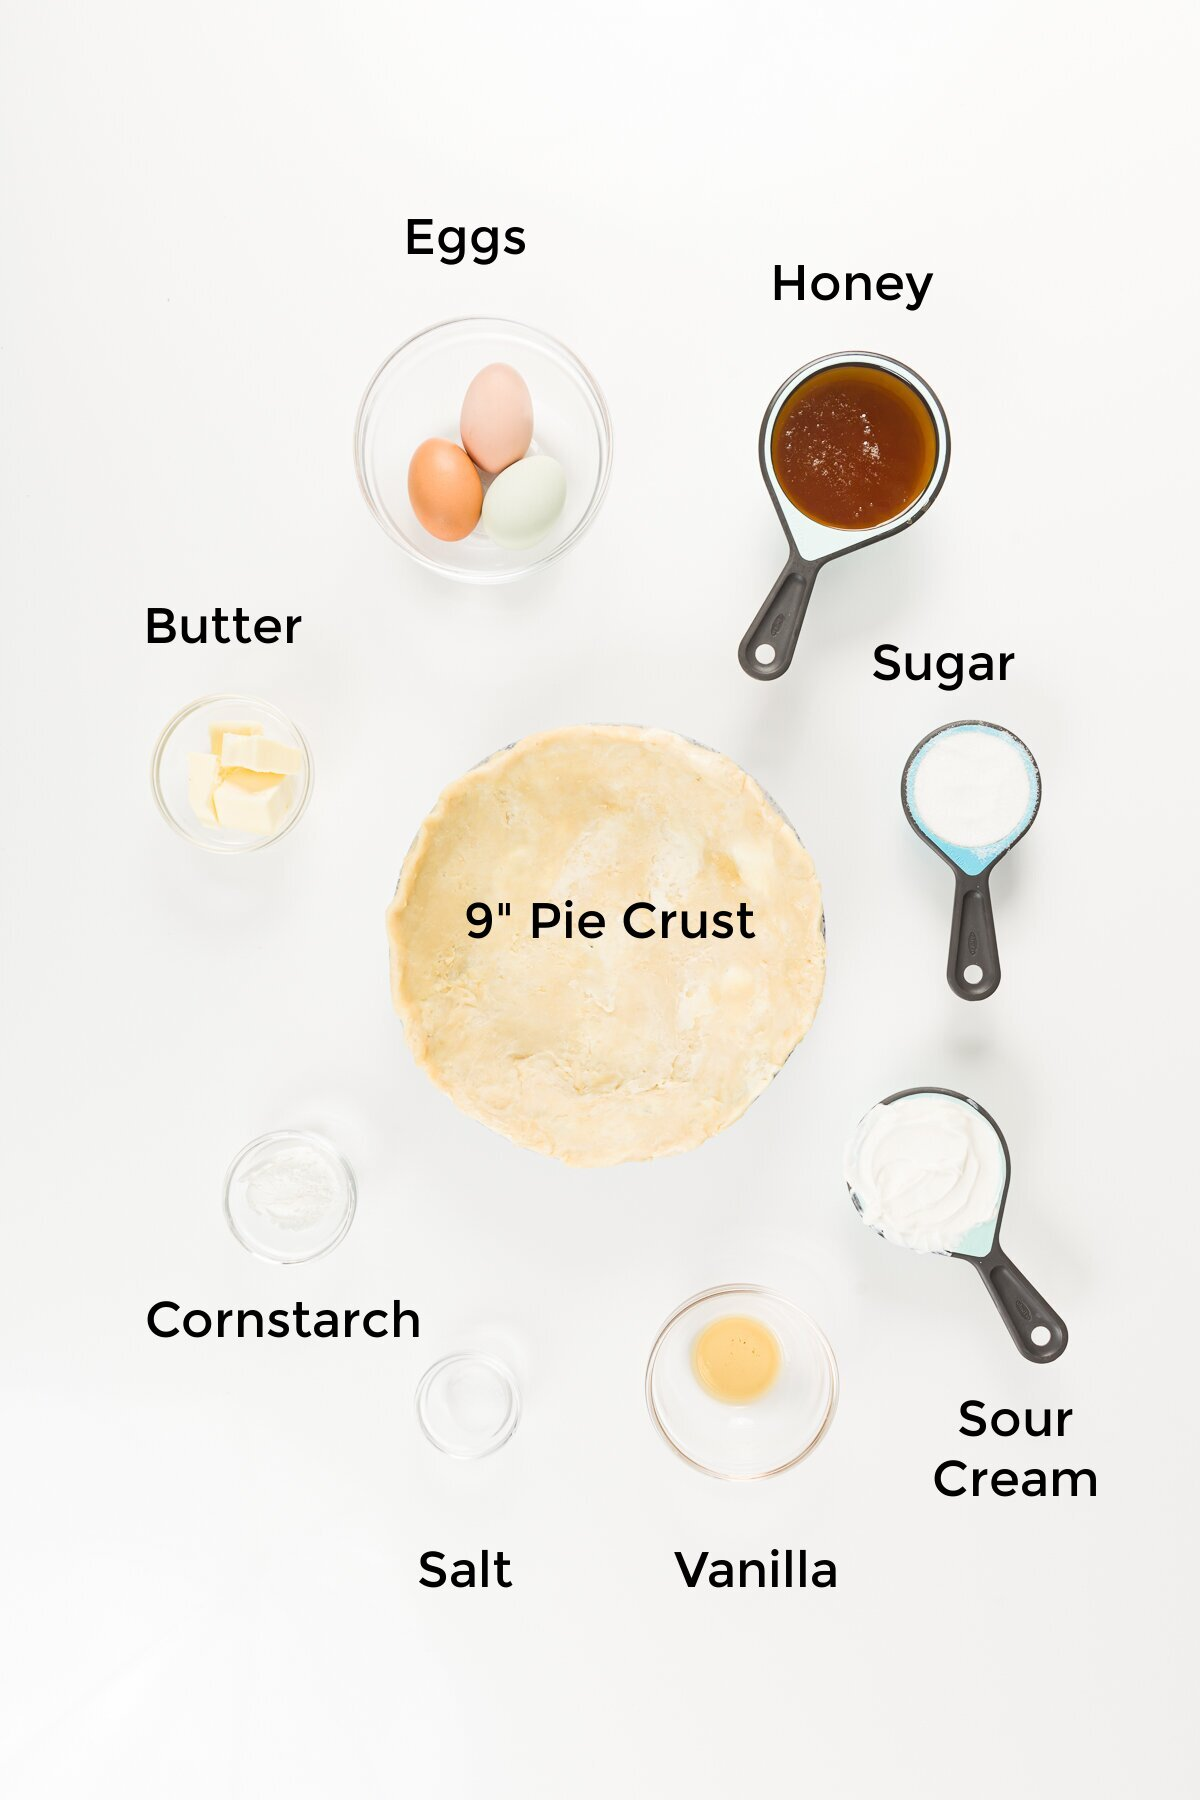 overhead view of ingredients in this honey pie recipe - eggs, honey, sugar, sour cream, vanilla extract, salt, cornstarch, butter, and a 9-inch pie crust